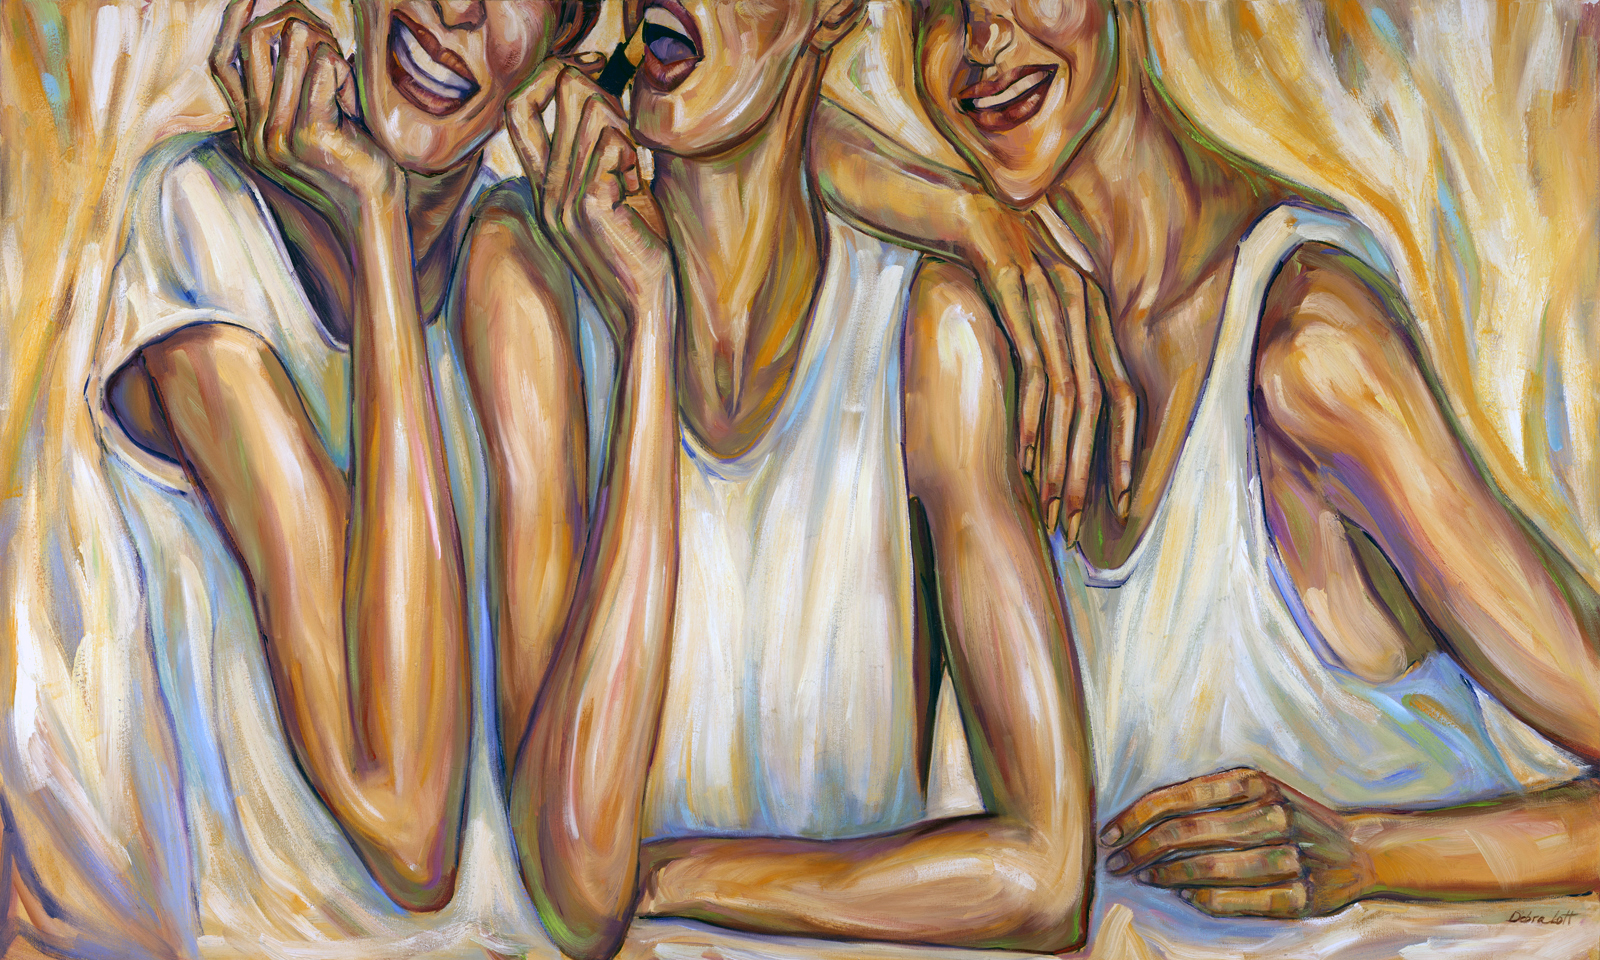 Debra Lott,  At Arms Length,  60x36, Oil on Canvas (photographer of art work: Ron Perrin)